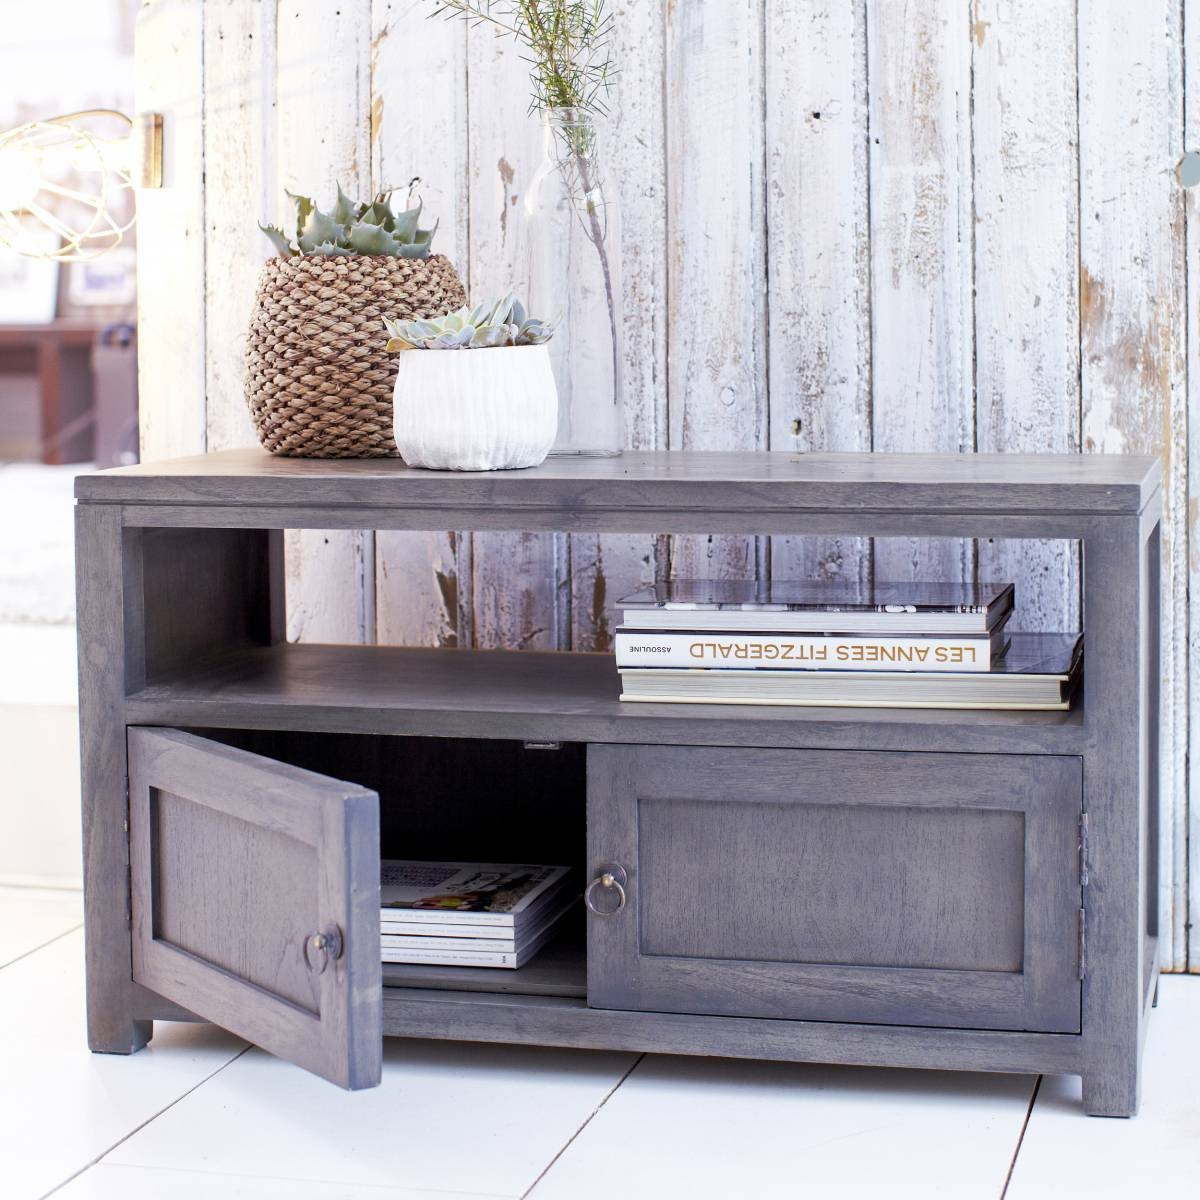 Popular Grey Tv Stand : How To Make Grey Tv Stand – Indoor throughout Grey Tv Stands (Image 9 of 15)